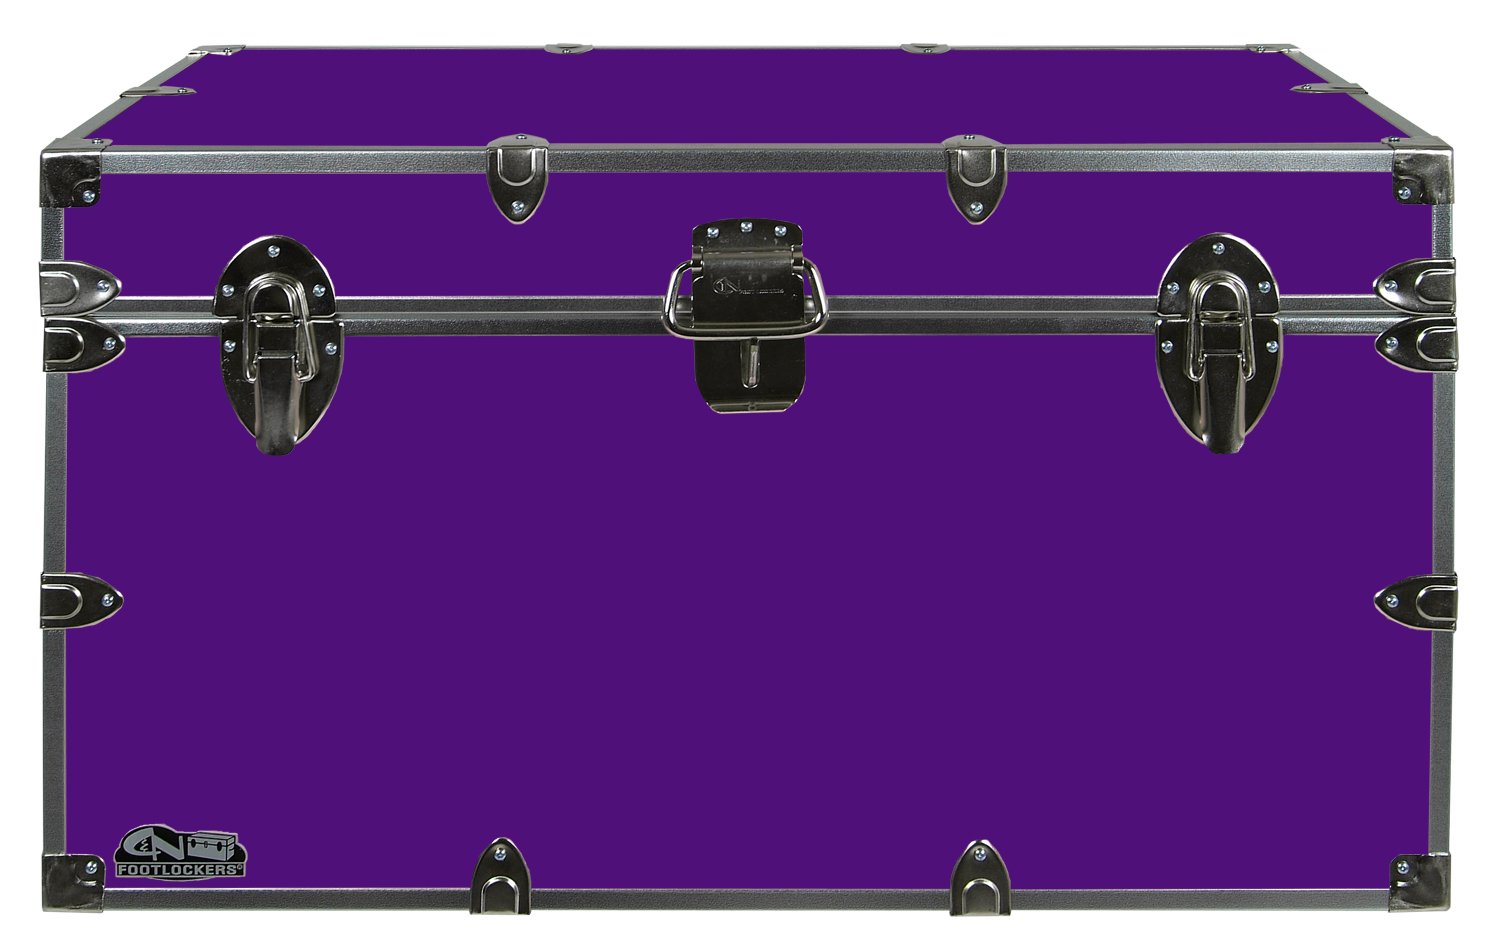 c08a33982cae5 Amazon.com: Graduate Footlocker Trunk 32x18x18.5